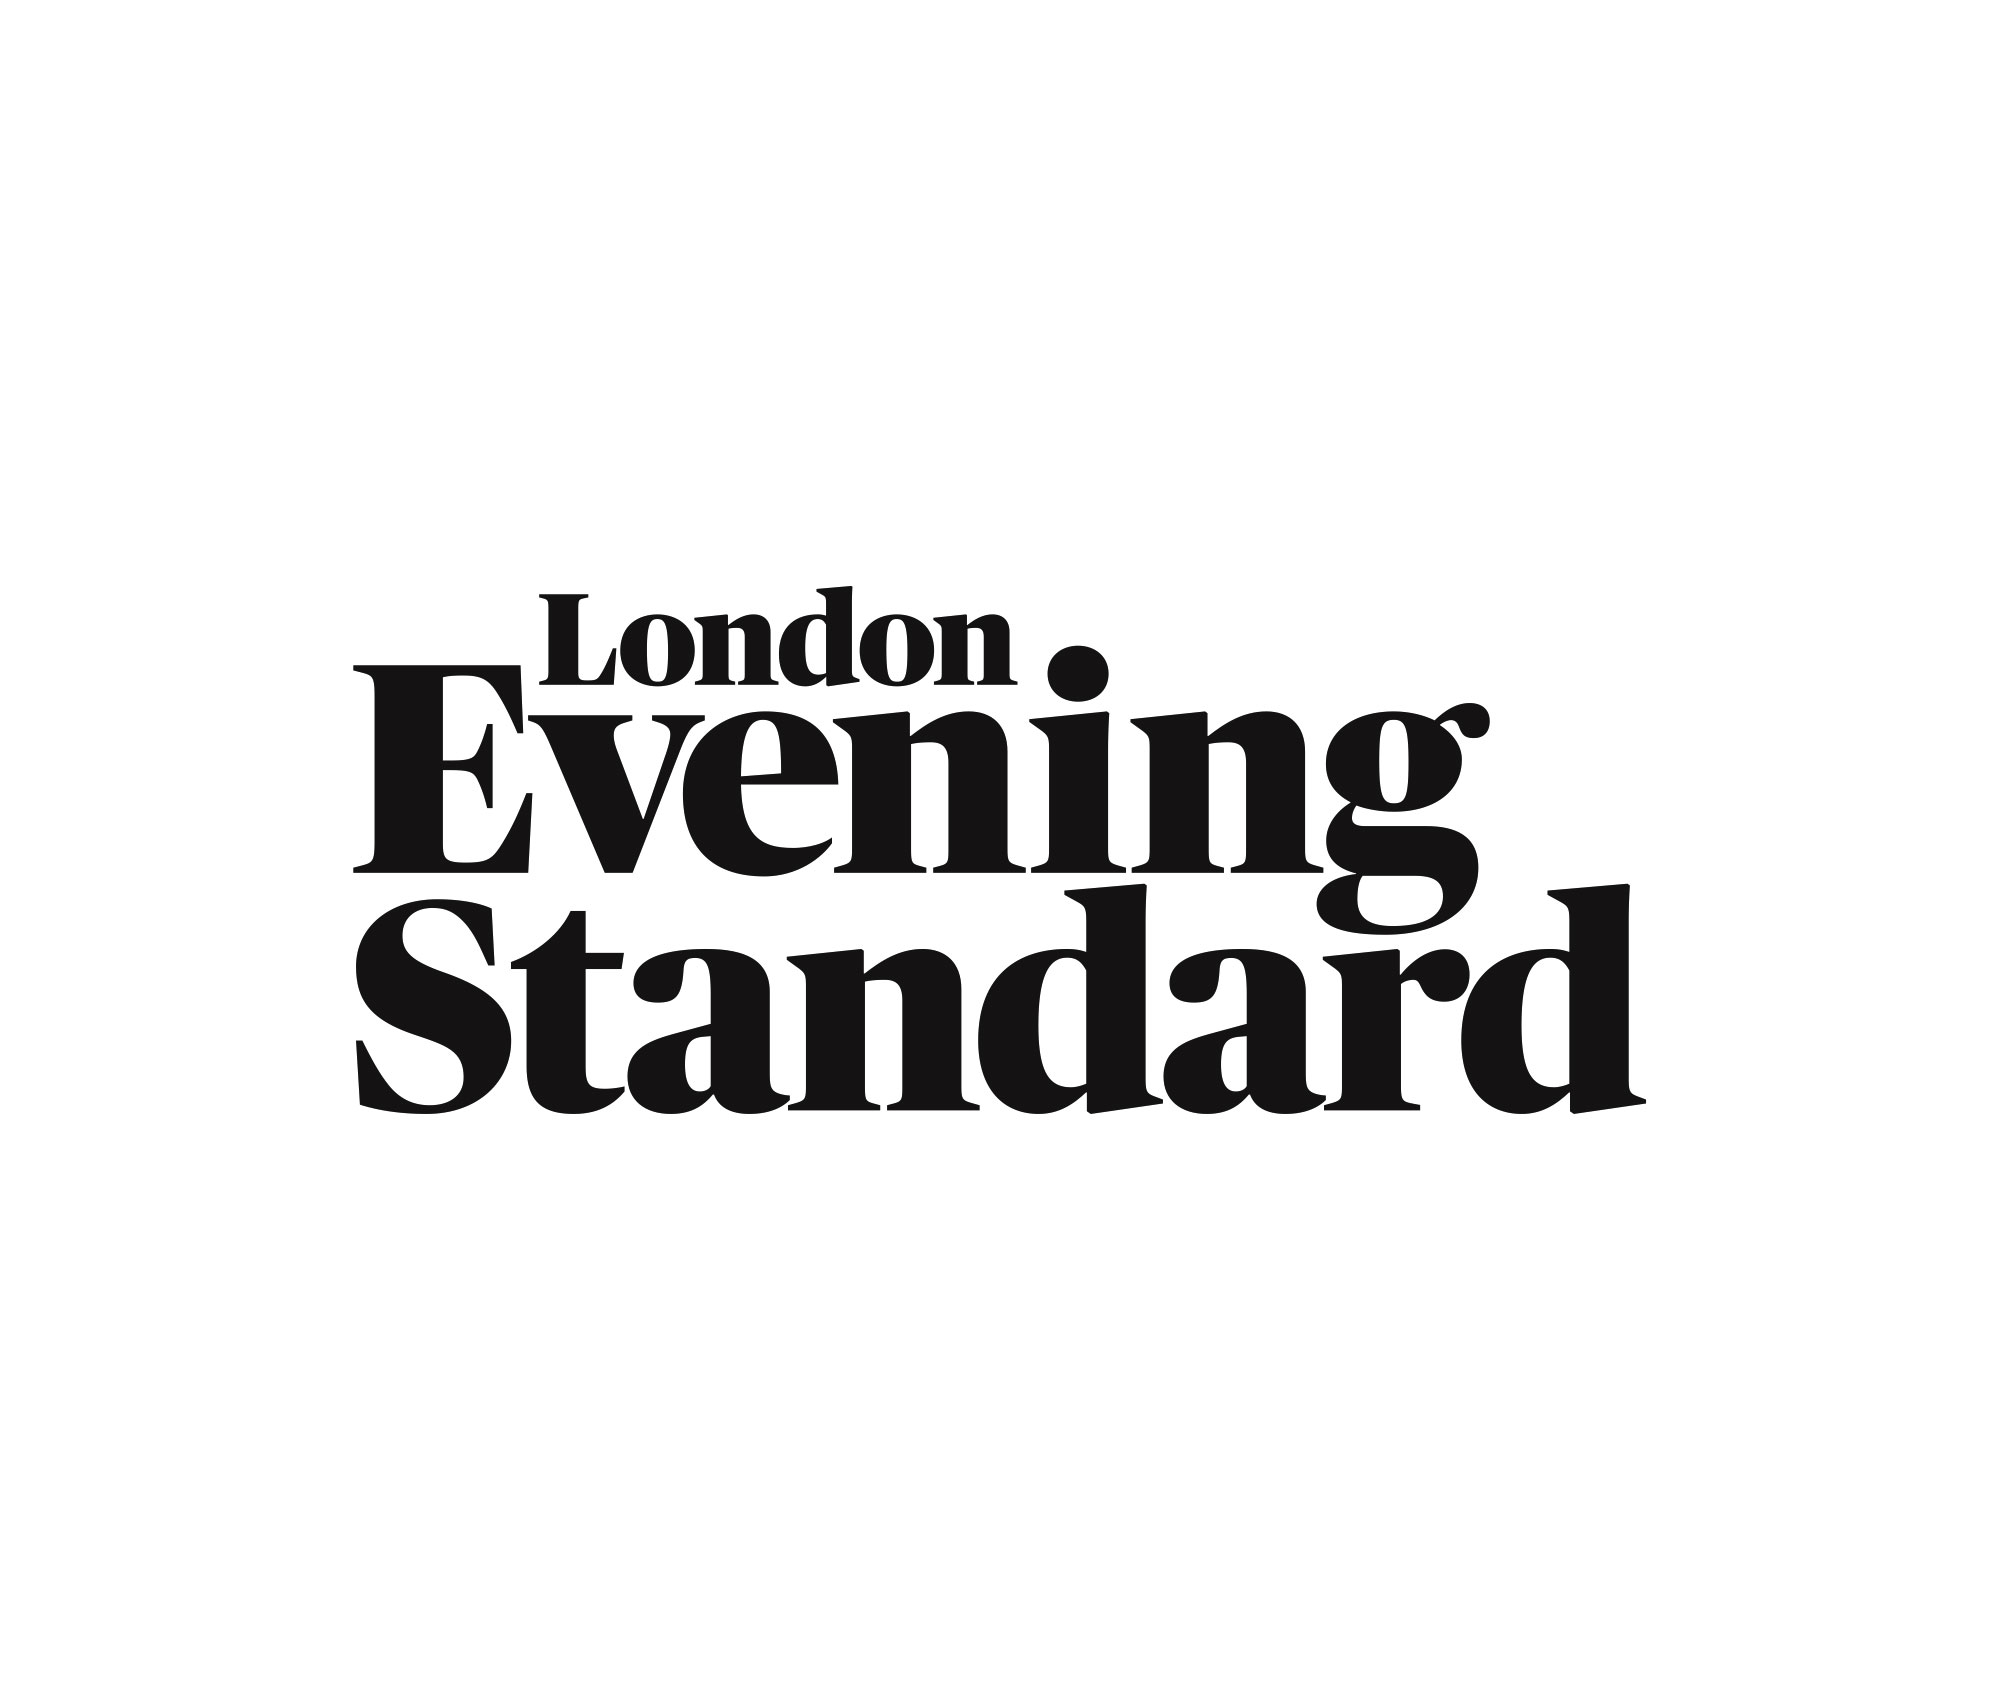 London-Evening-Standard-logo.jpg